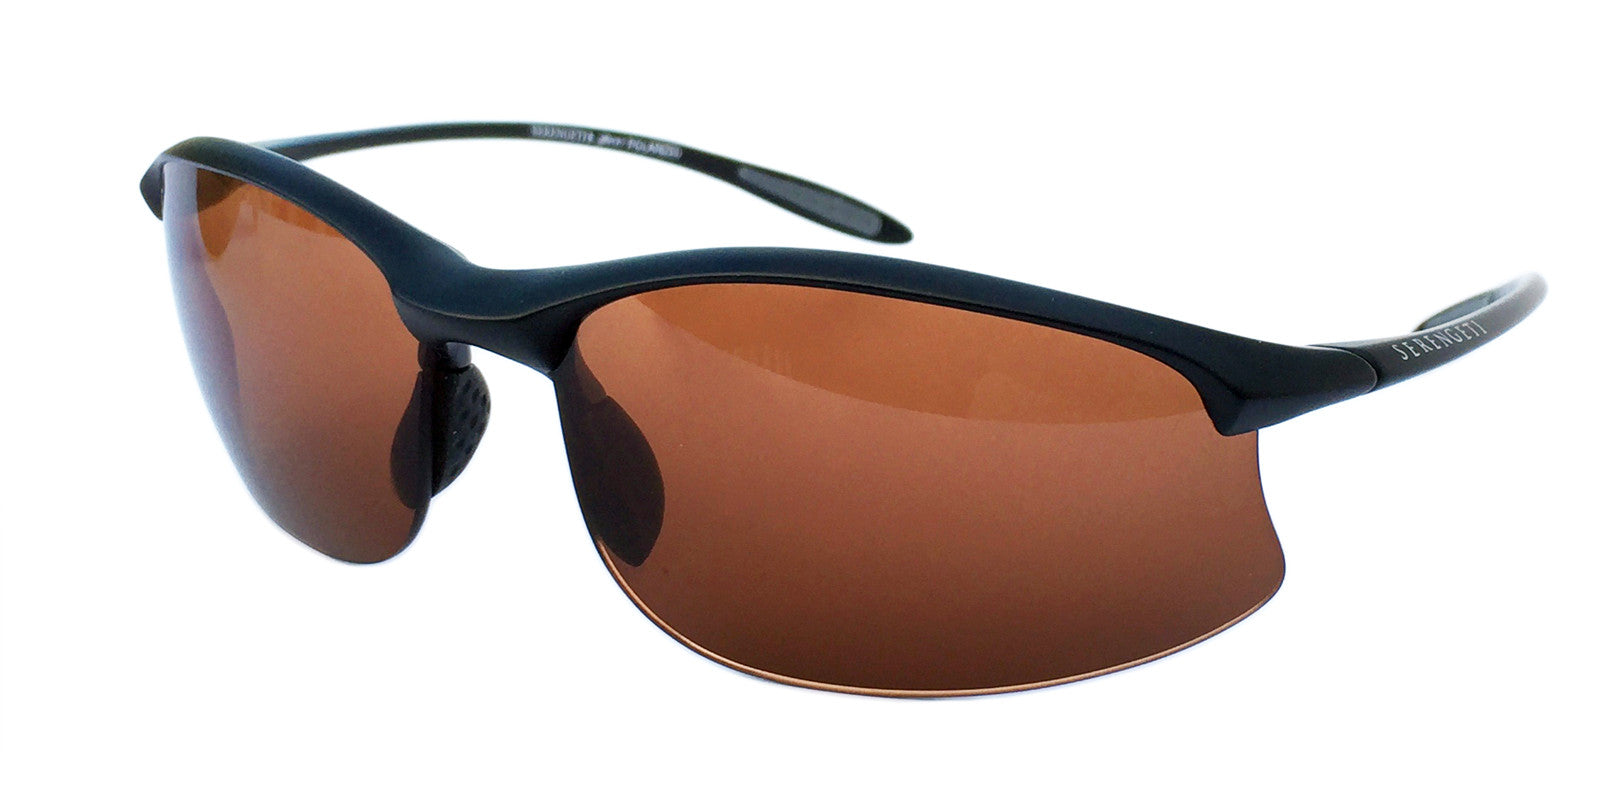 d9d75c0632 Polarized Sunglasses. Serengeti Maestrale 7356  span - Satin Black